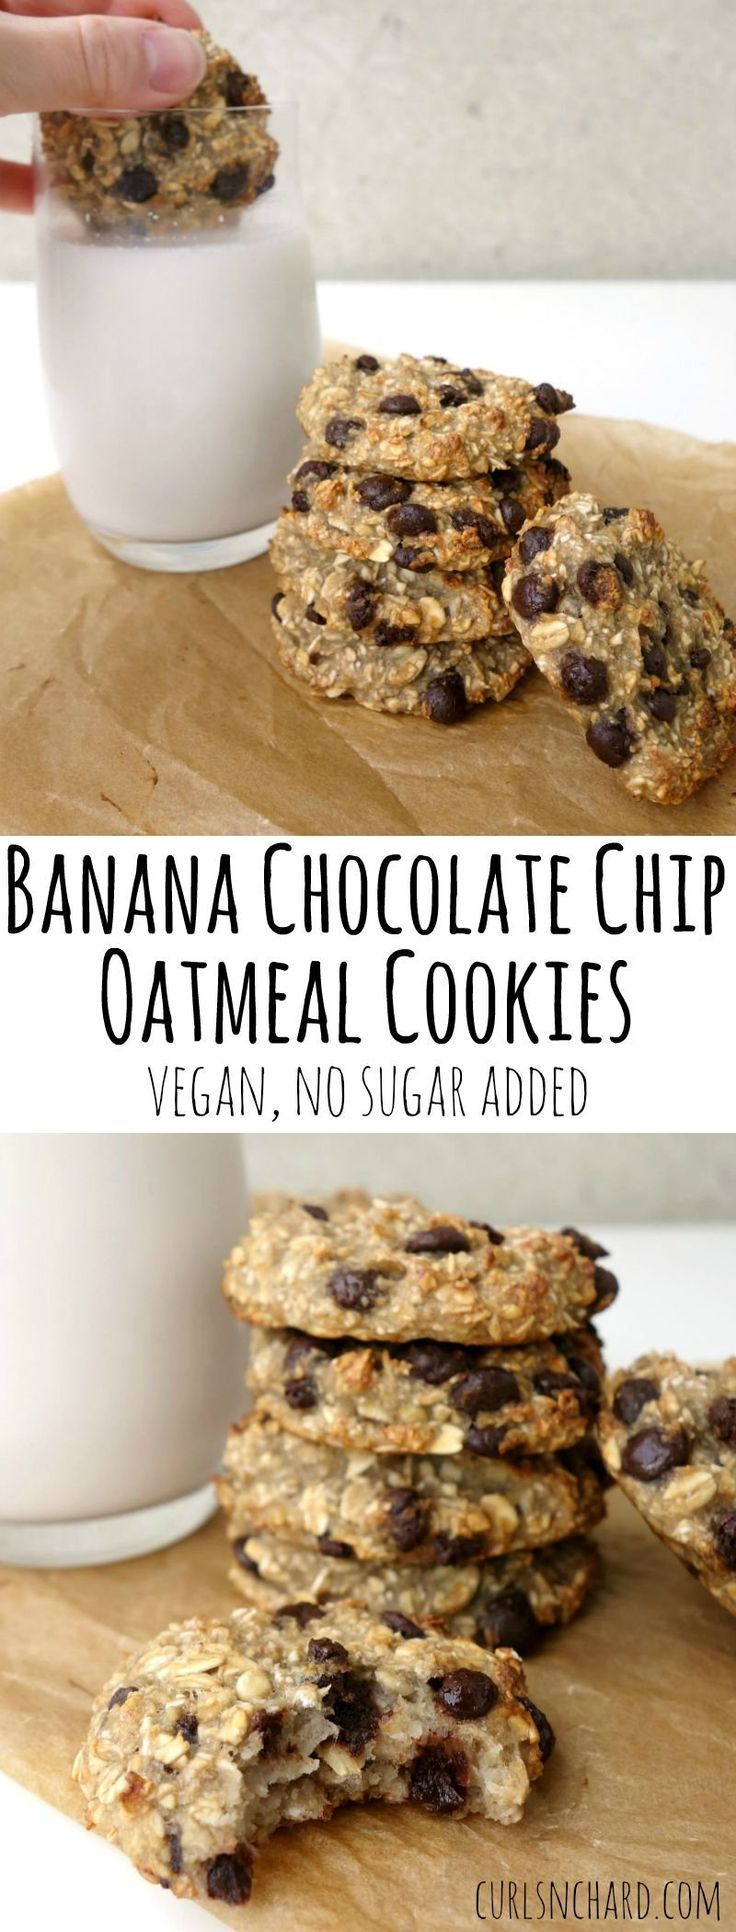 Banana Chocolate Chip Oatmeal Cookies recipe - 3 ingredients, no added sugar and naturally vegan. Ready from start to finish in 20 minutes. 2 banana's, 1 cup of Quaker oats and 3 Tbsp. of dark chocolate.. Bake @ 360 degrees for 15 minutes.